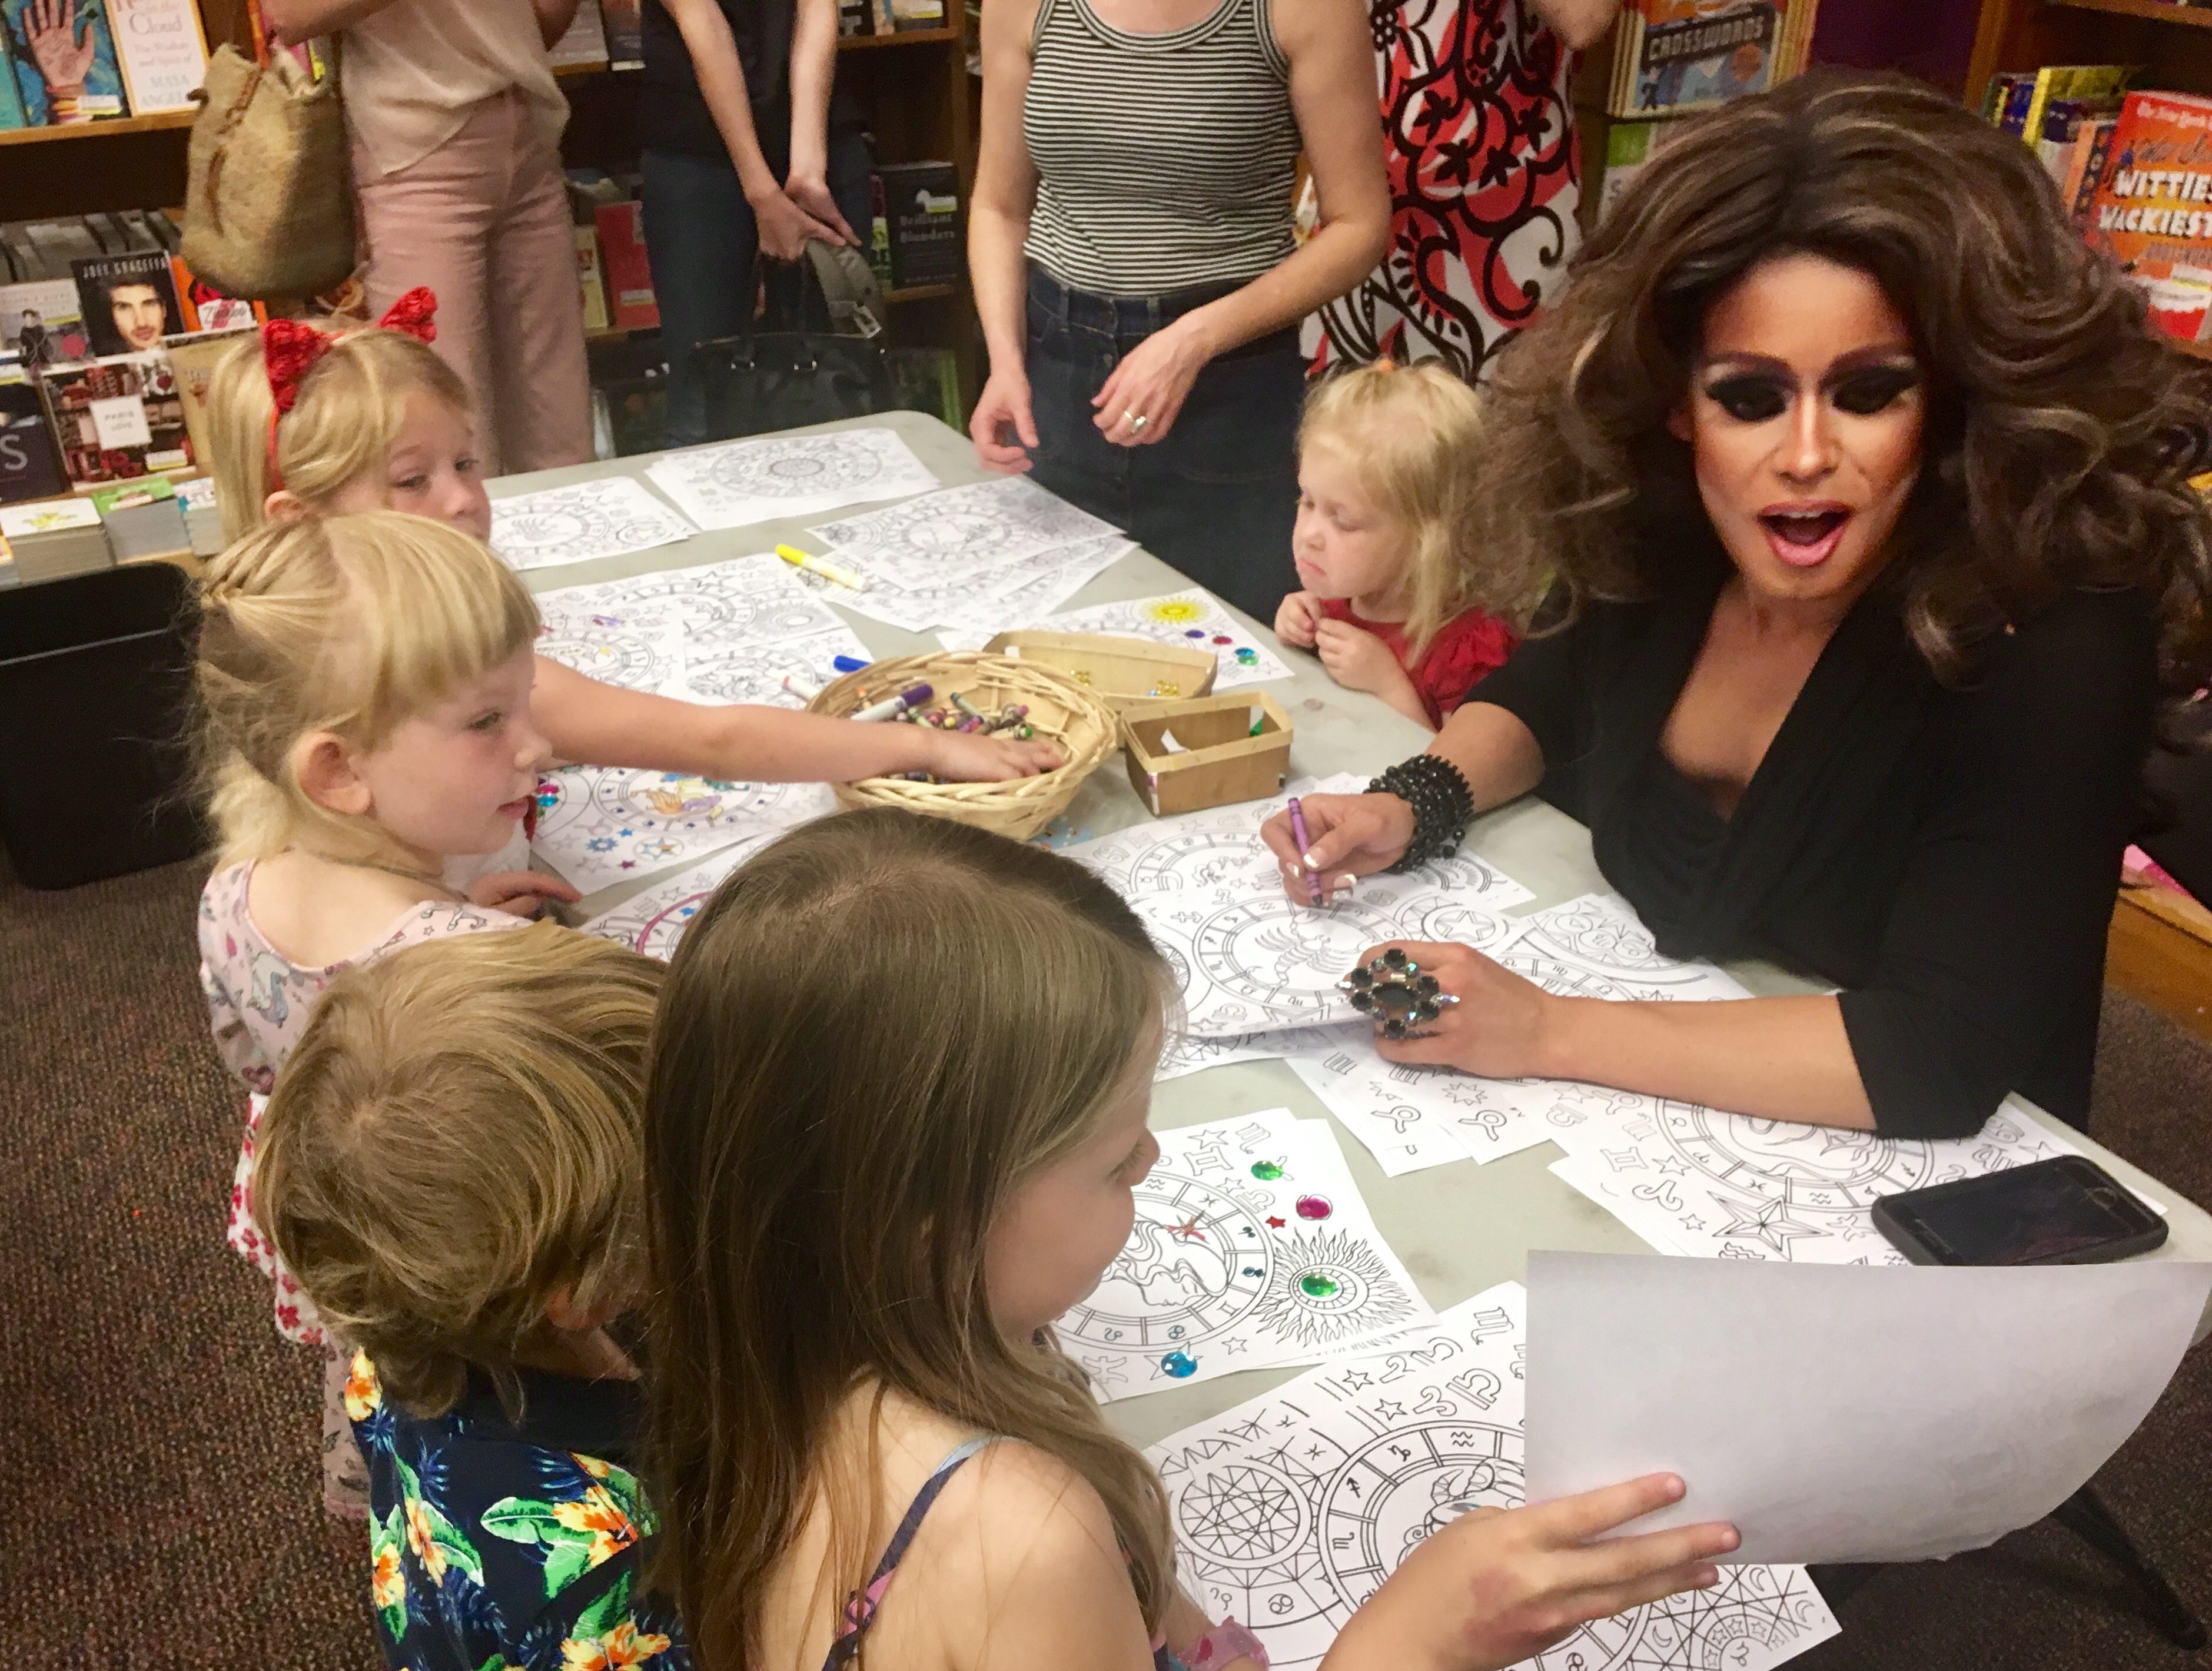 Drag queen Nevaeh McKenzie compliments 5-year-old Gwen Crum on her artwork after Drag Queen Storytime at Changing Hands Bookstore in Tempe.